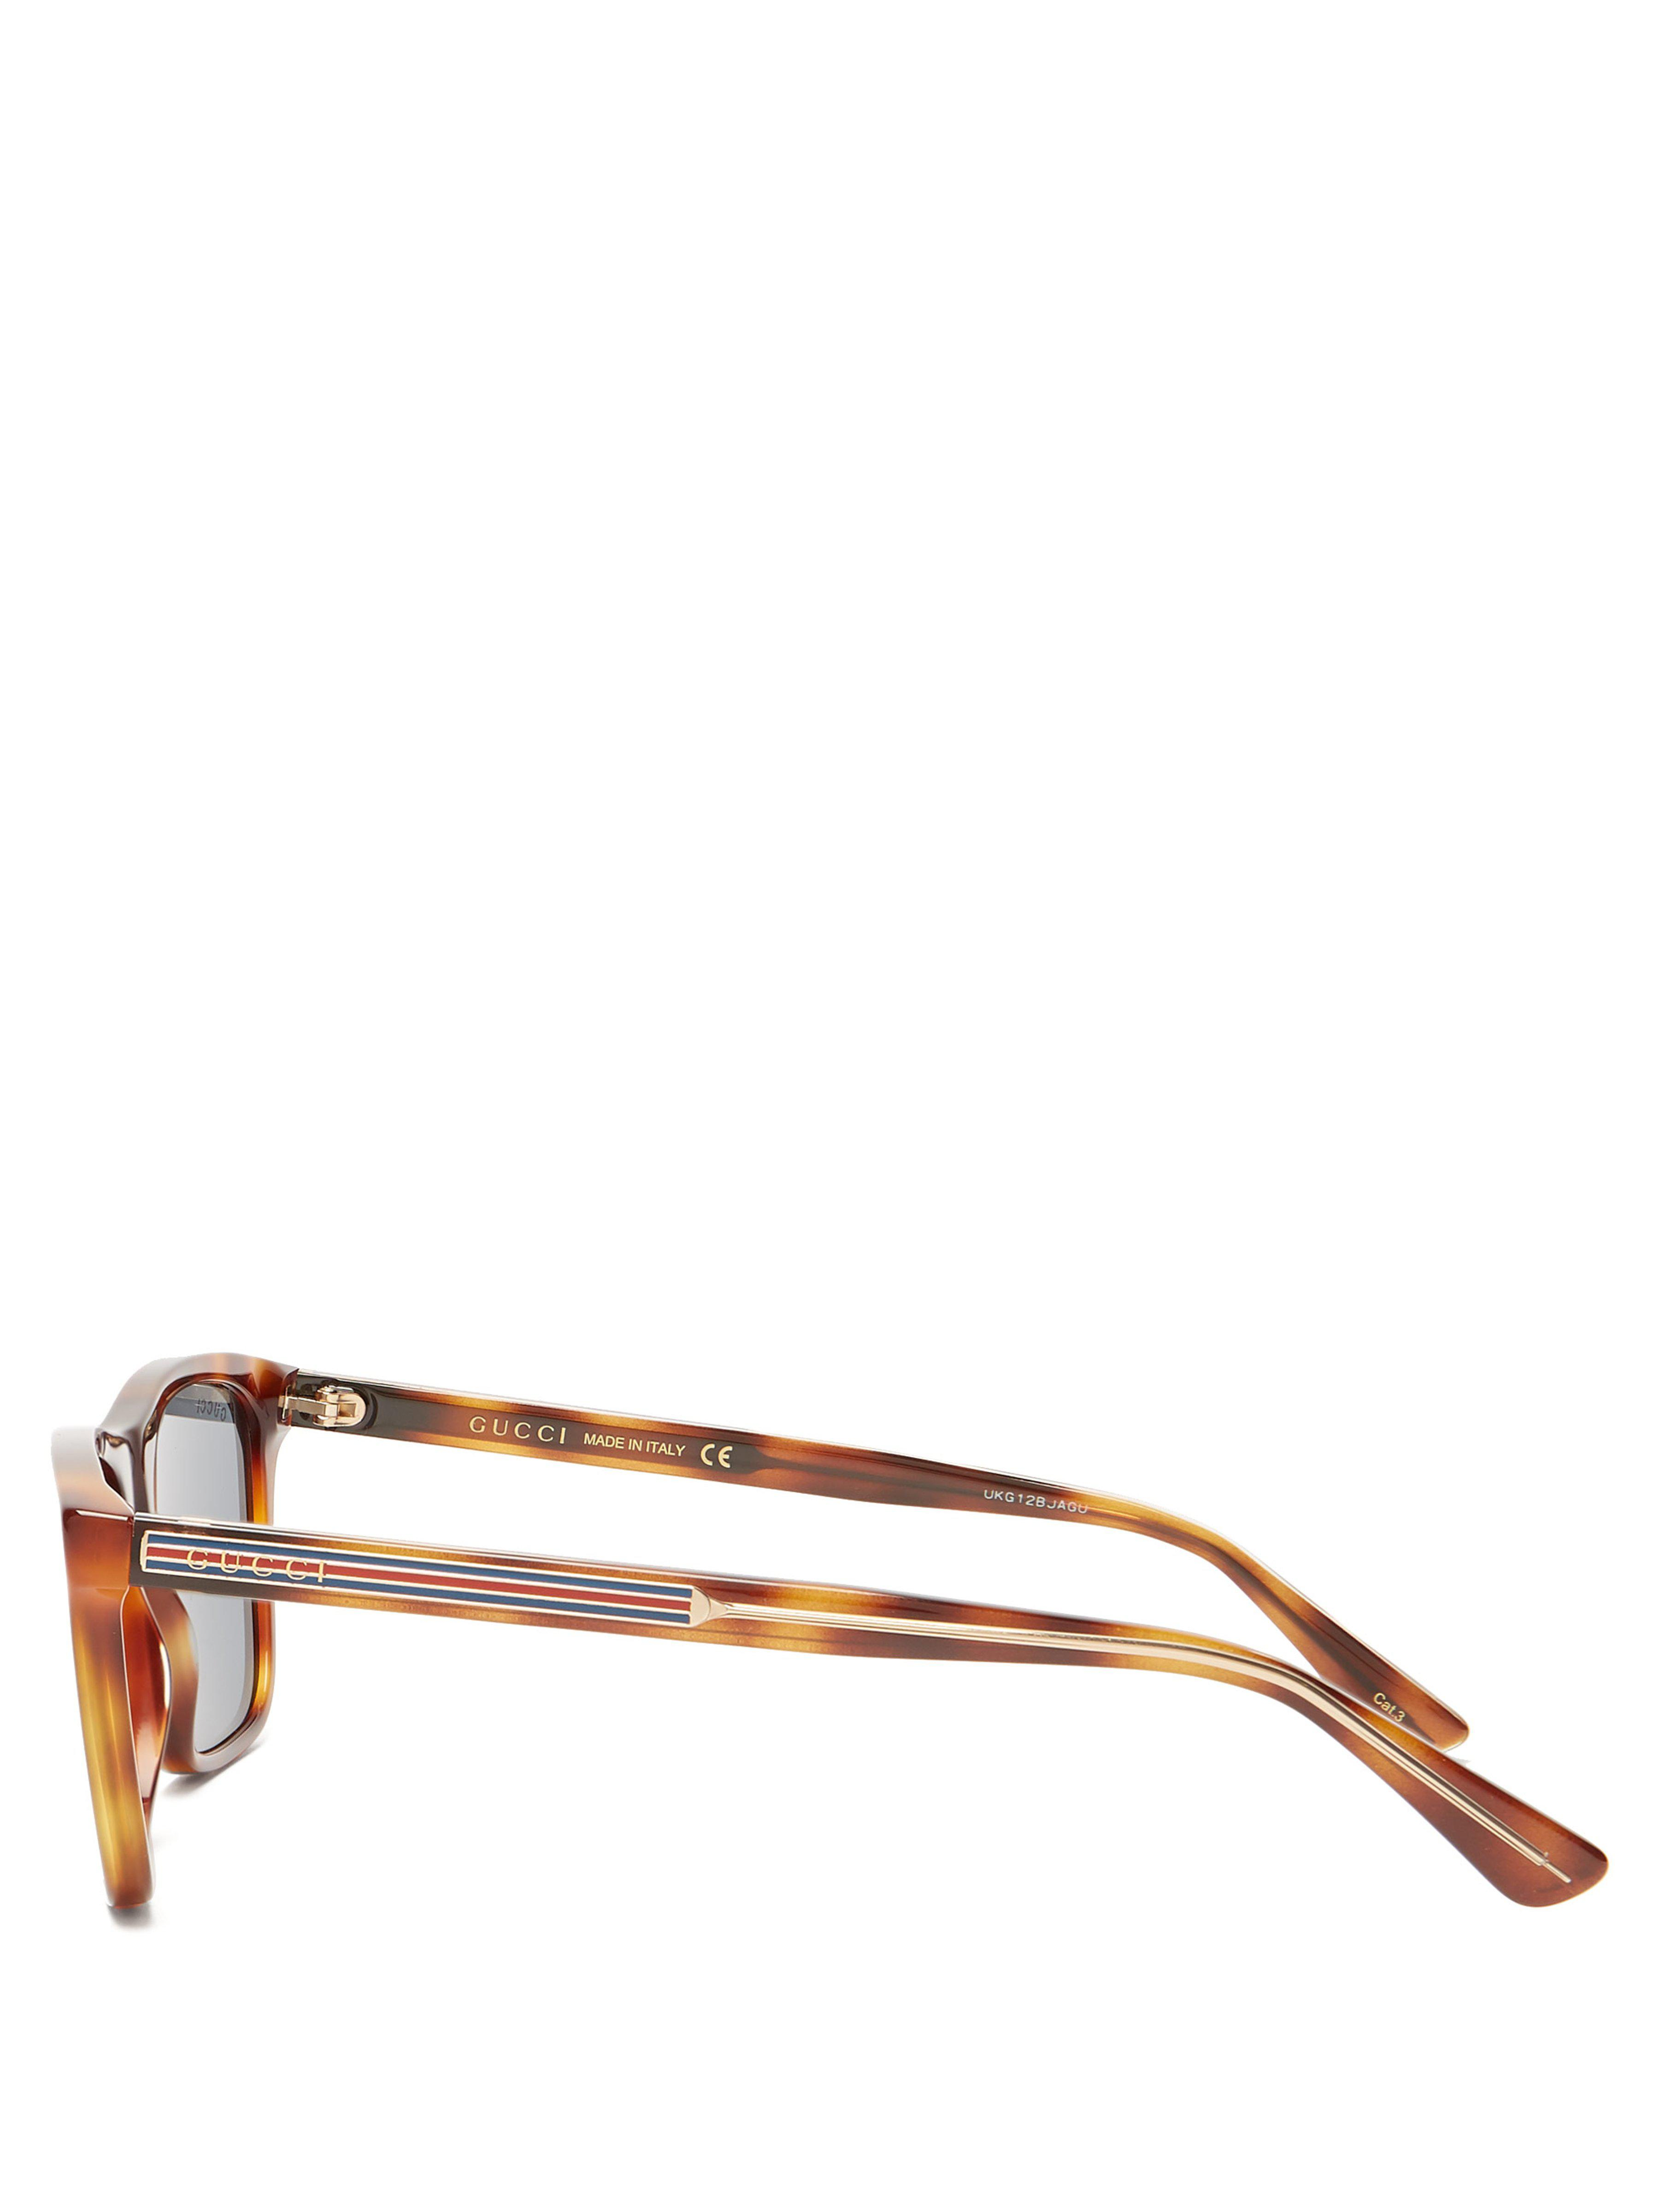 2a9daba447c90 Gucci - Brown Square Frame Acetate Sunglasses for Men - Lyst. View  fullscreen